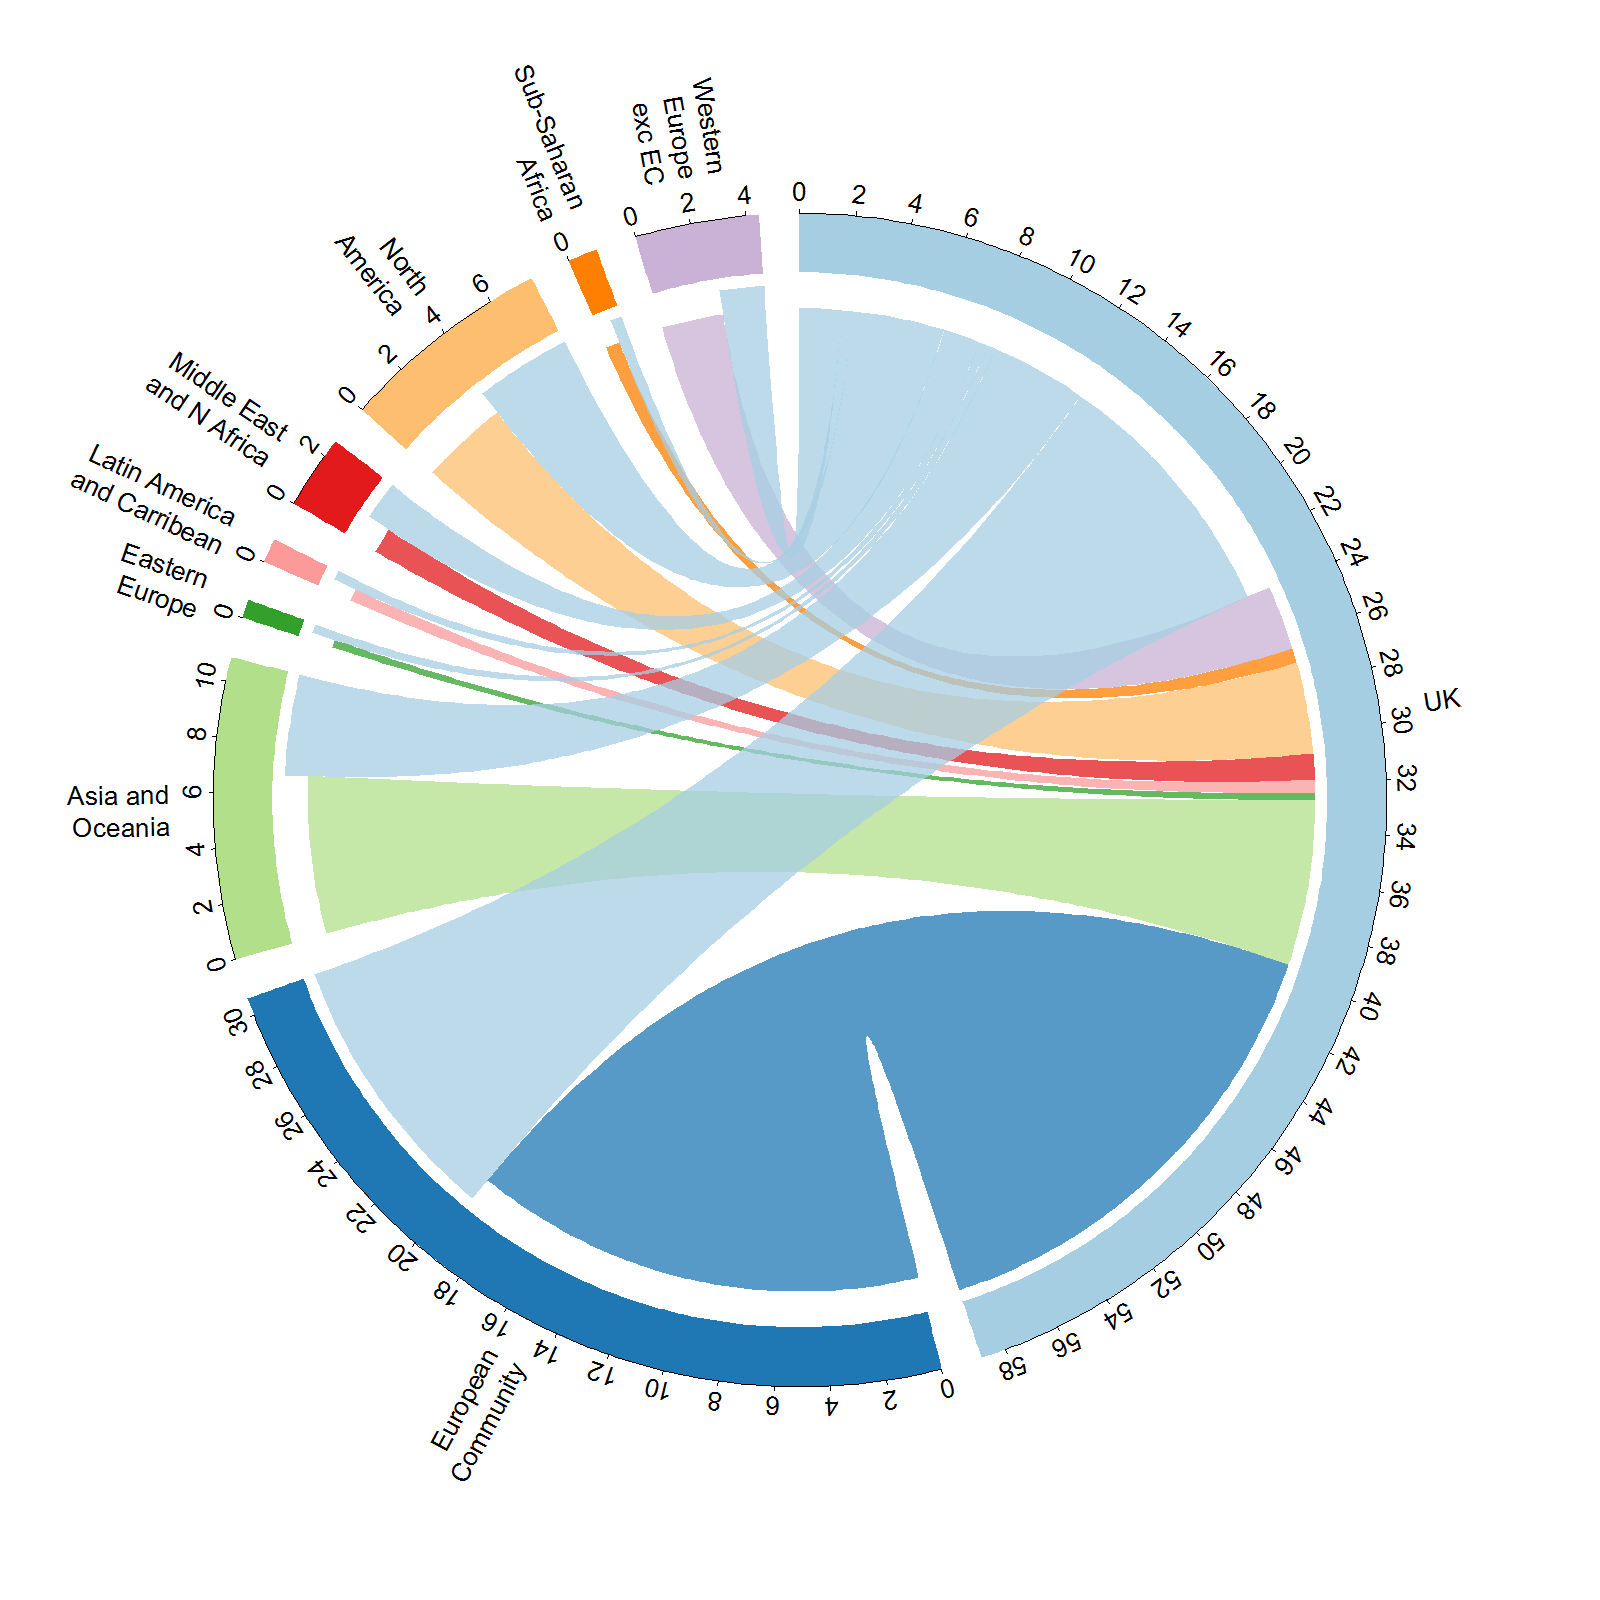 Figure 1: A circular flow diagram of UK exports and imports in February 2016. The axes represent the value in billions of pounds.